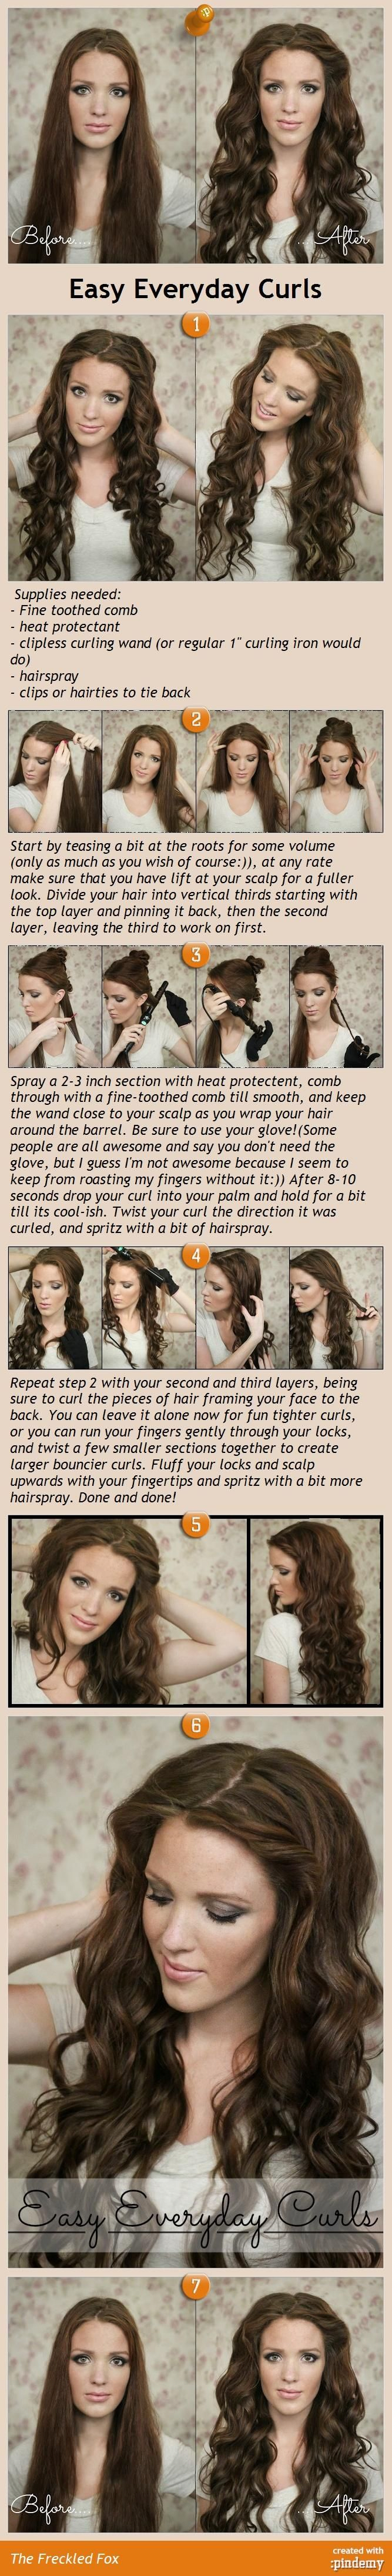 easy hair tutorials for long and short hair everyday curls